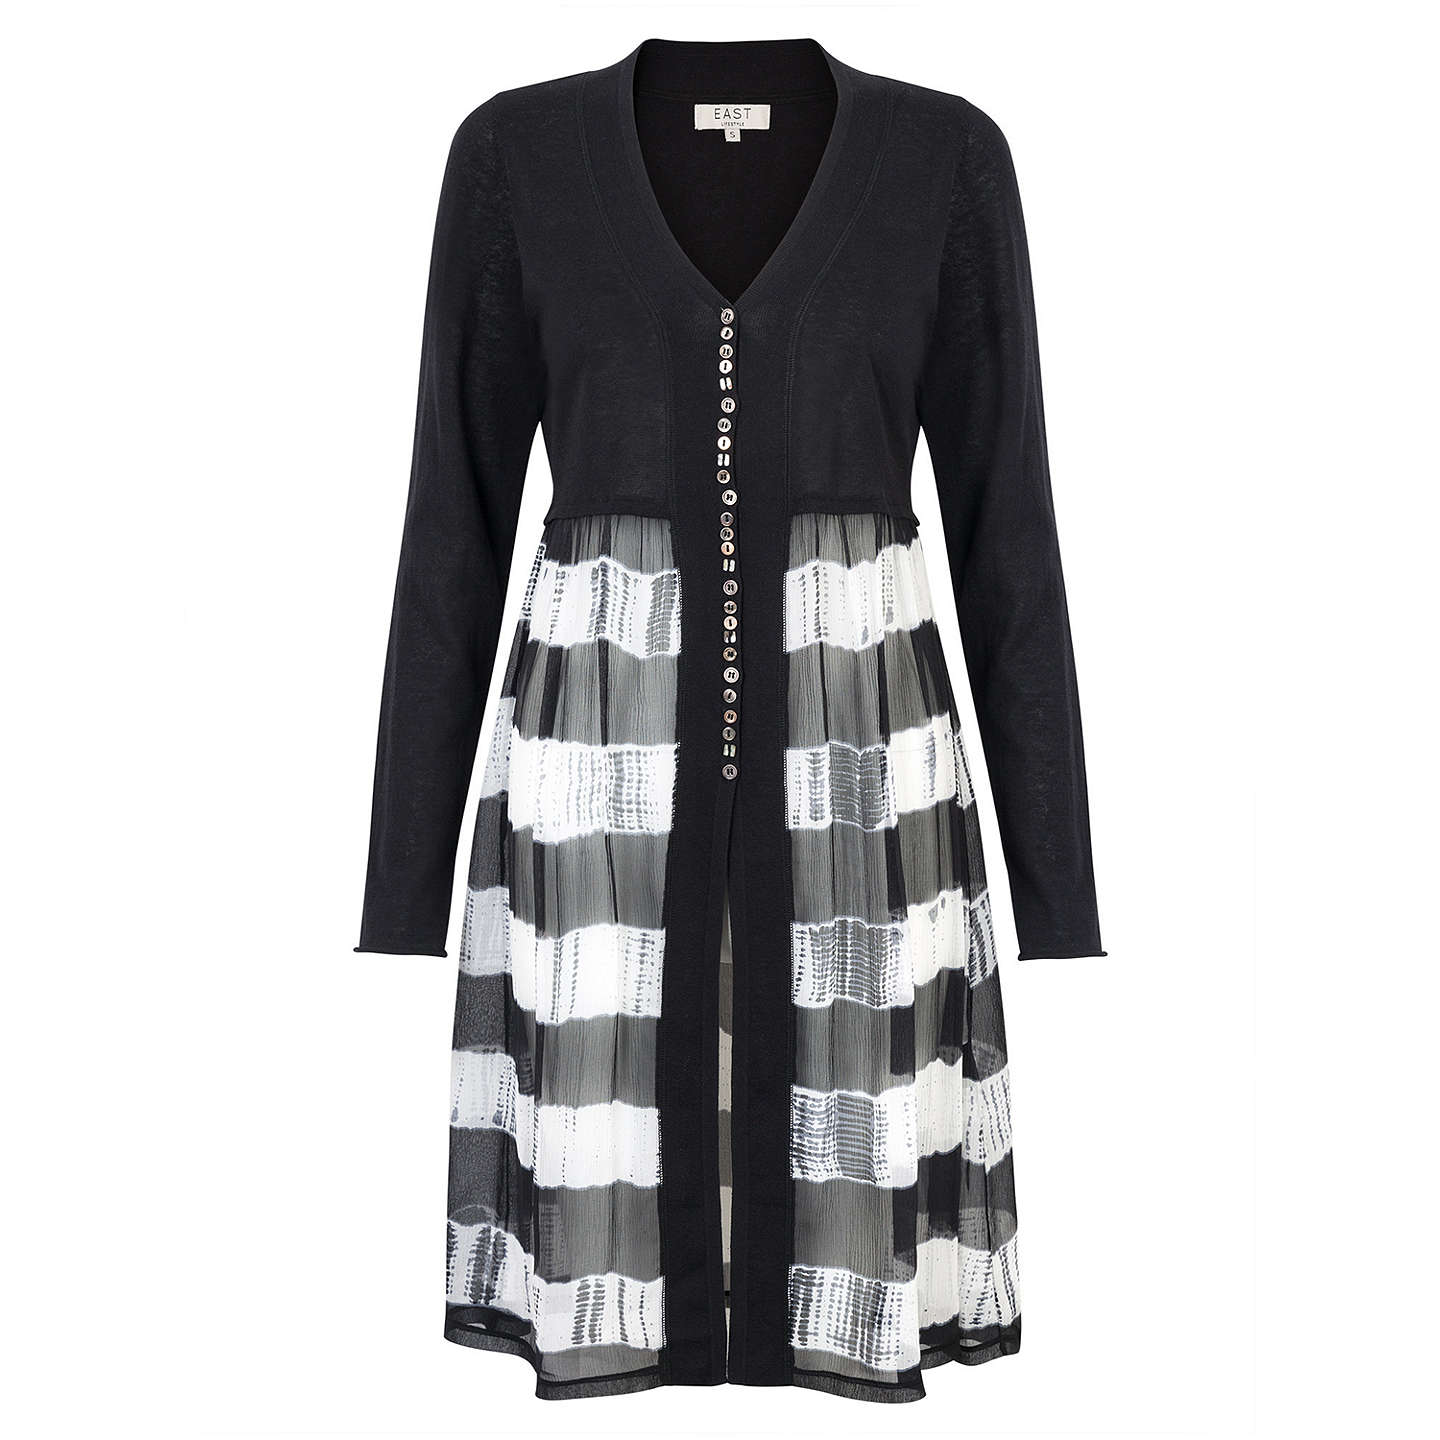 BuyEast Printed Combination Cardigan, Black, S Online at johnlewis.com